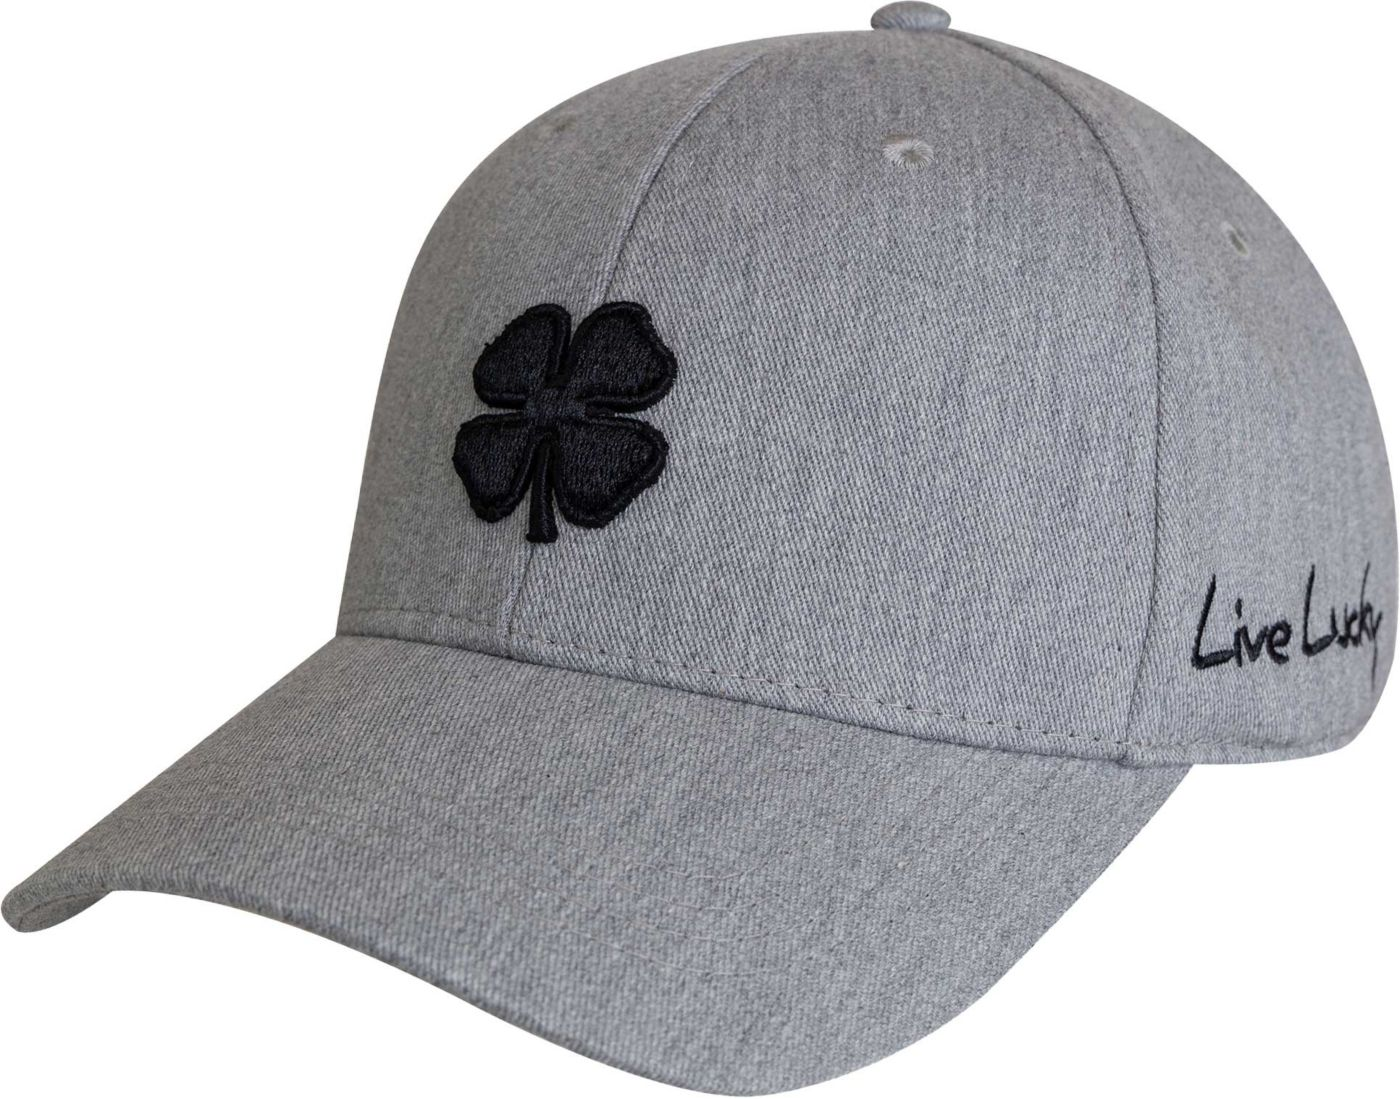 Black Clover Men's Classic Luck Golf Hat